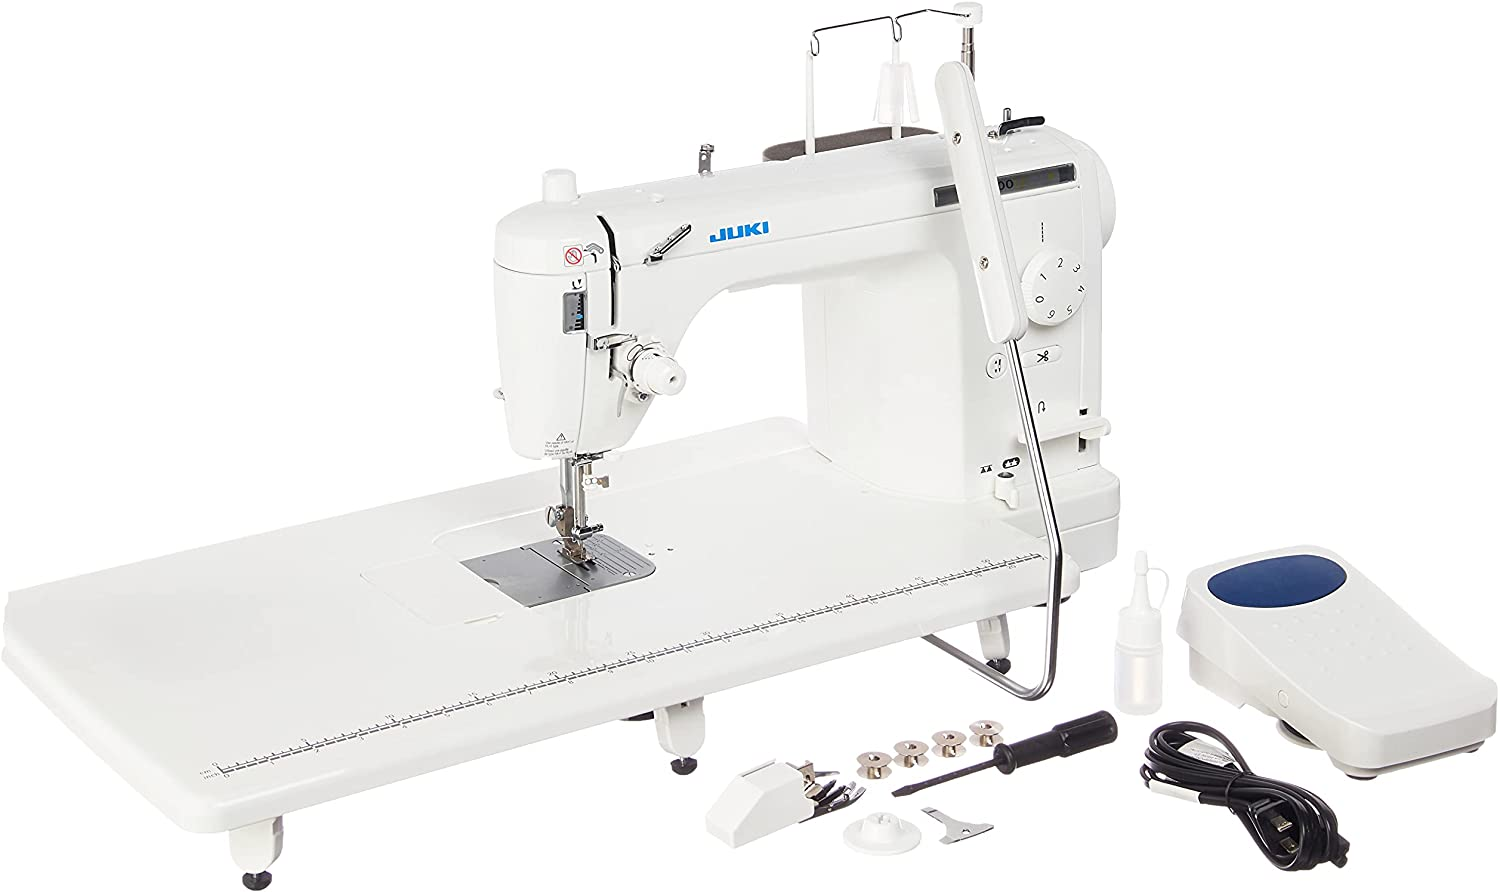 JUKI TL-2000Qi Sewing and Quilting Machine - Best Sewing Machine for Quilting and Embroidery